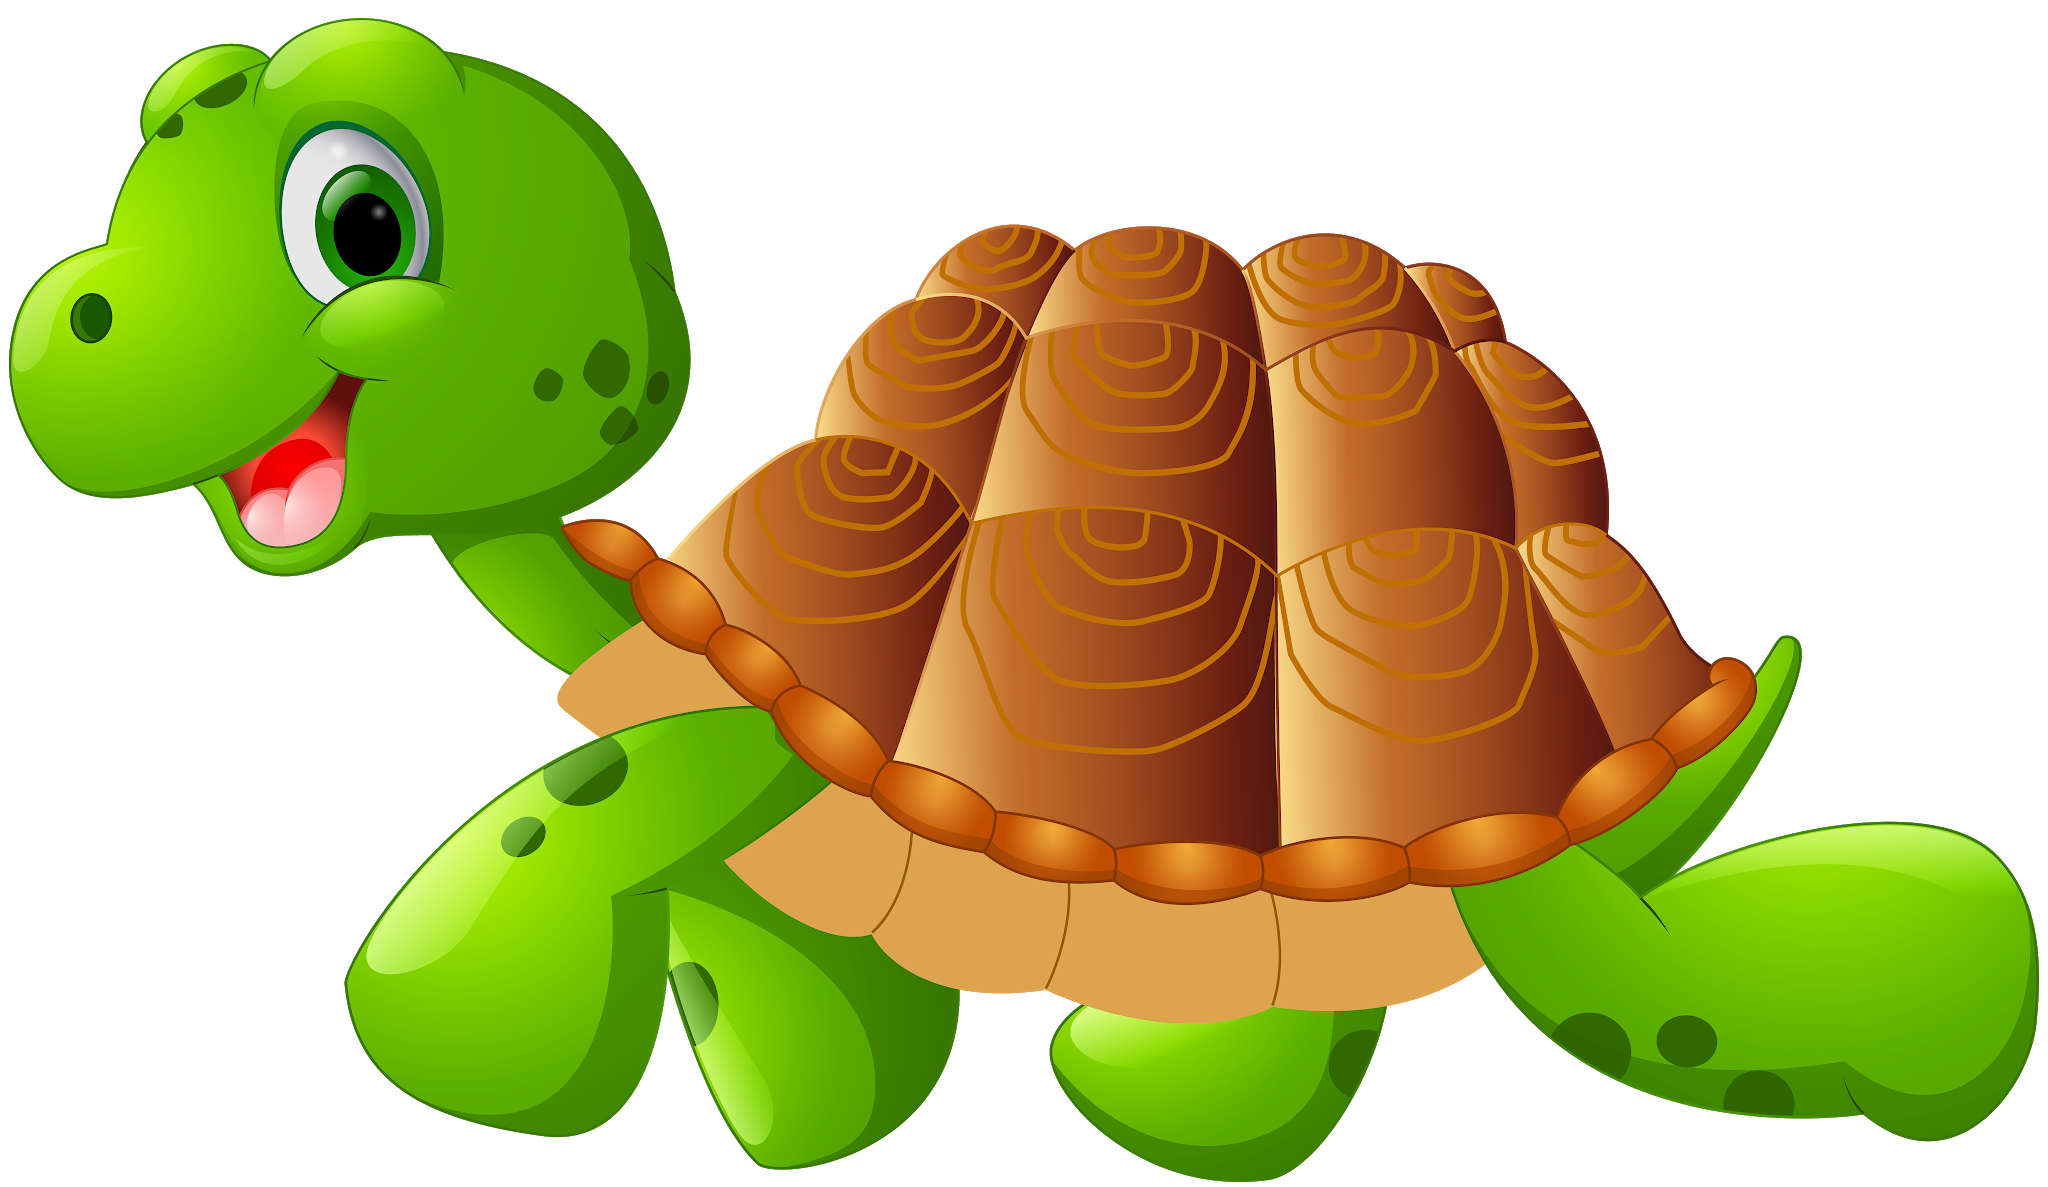 Turtle Tortoise Clip Art Turtle Png Image And Clipart Cartoons Png Clip Art Free Clip Art